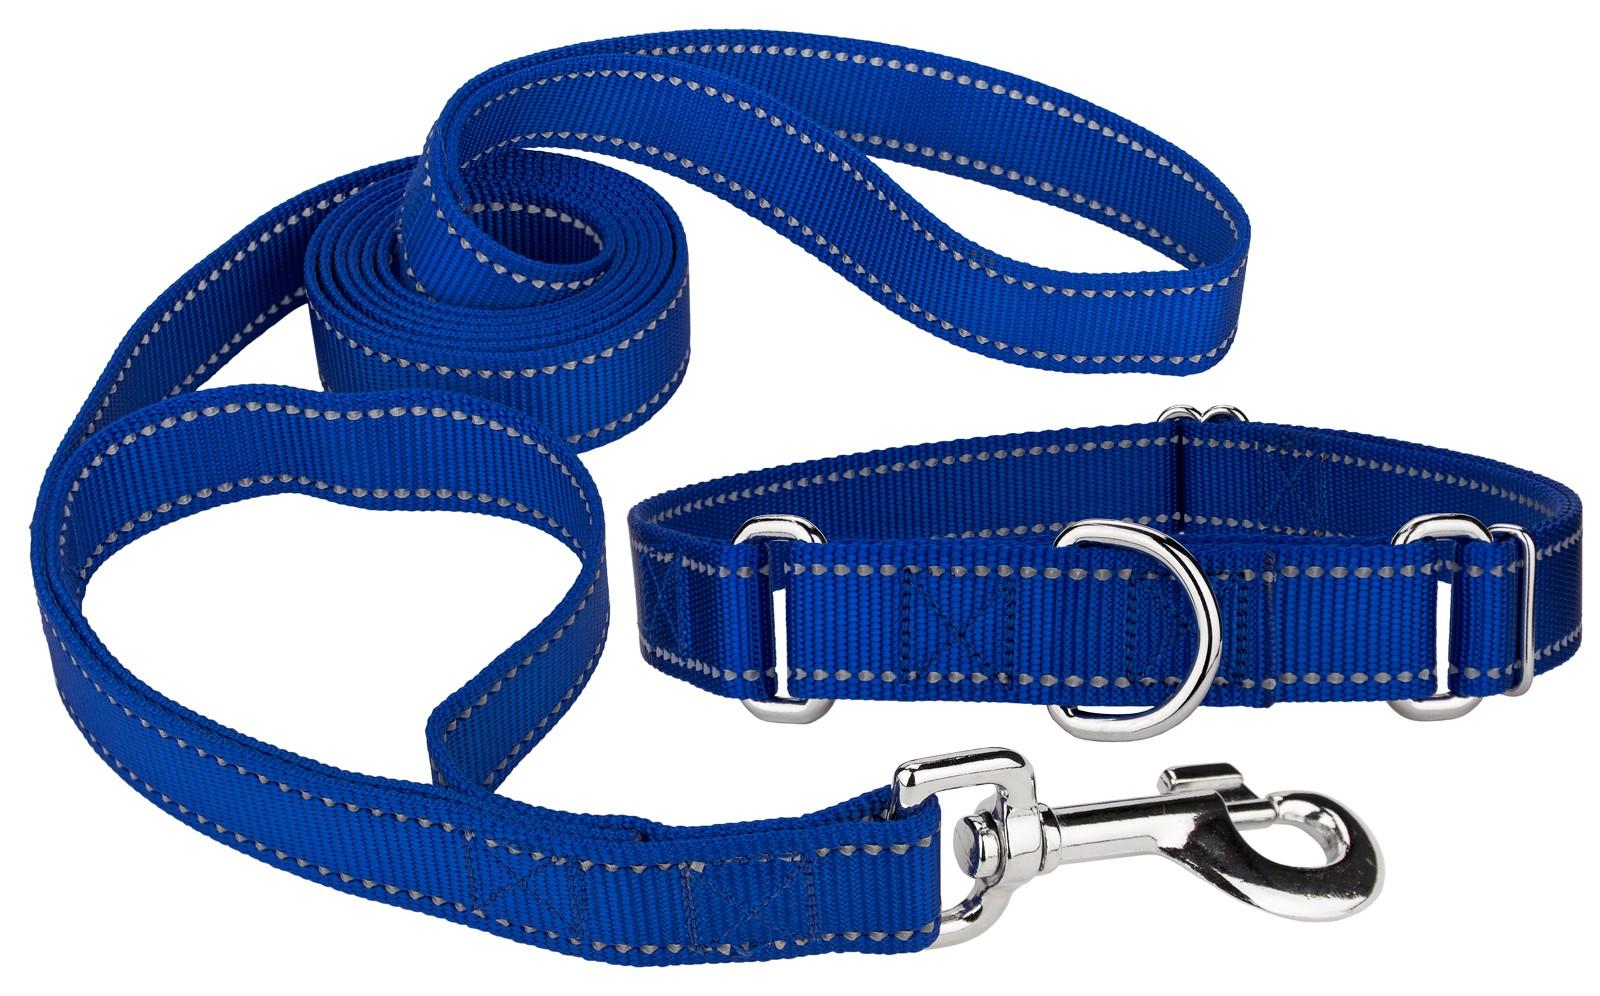 royal blue reflective nylon martingale dog collar u0026 double handle leash